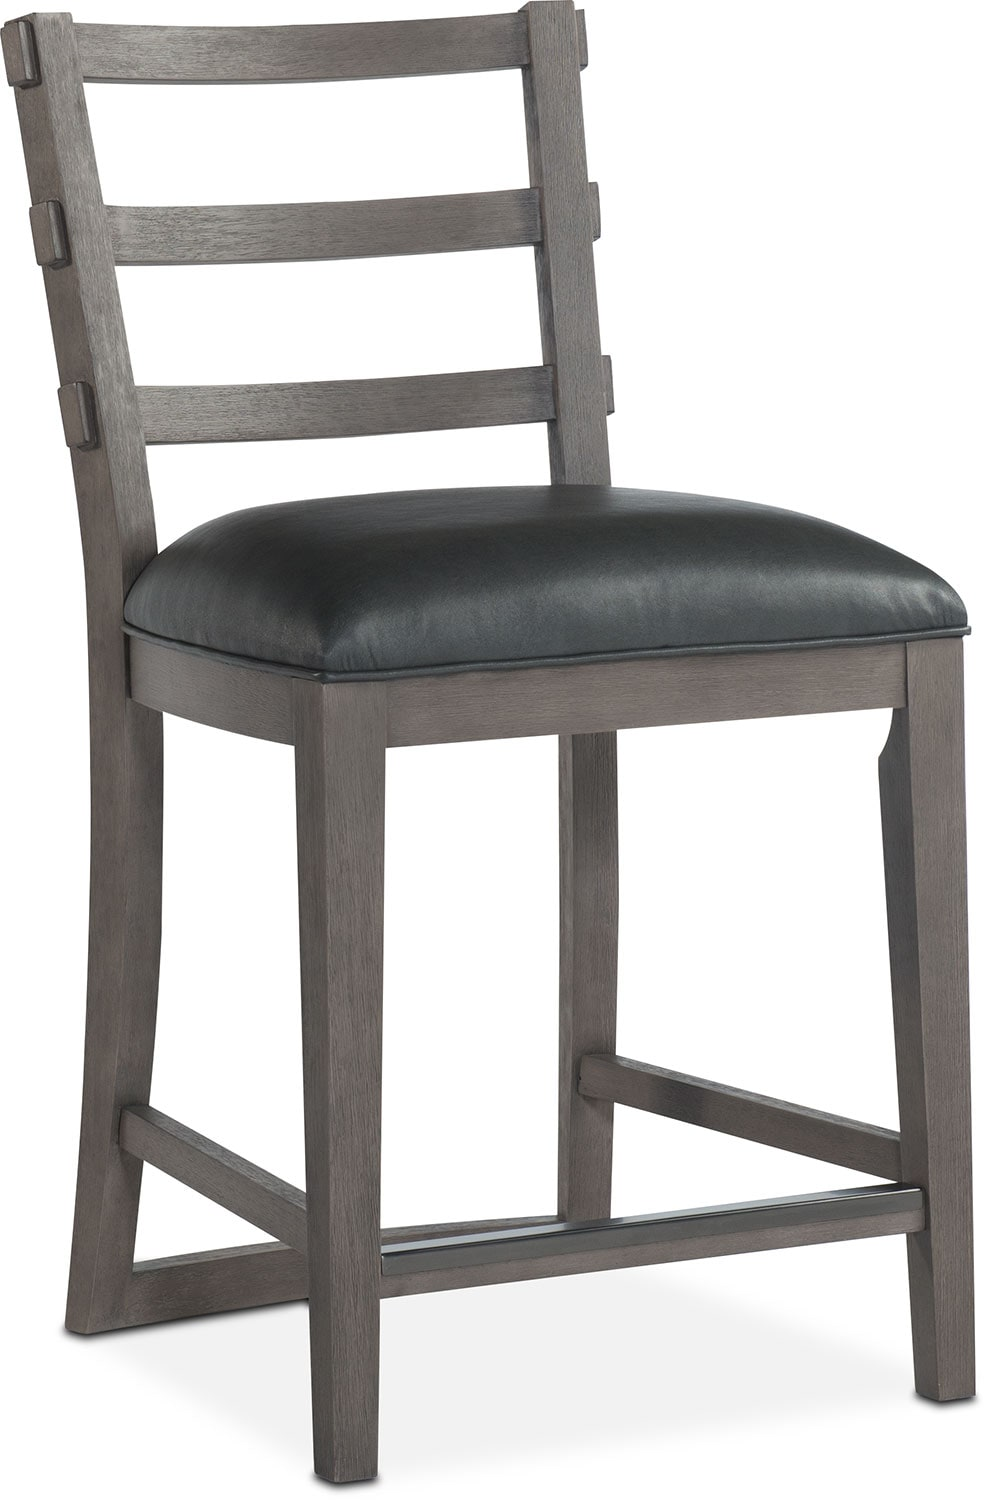 Malibu Counter Height Stool Gray Value City Furniture